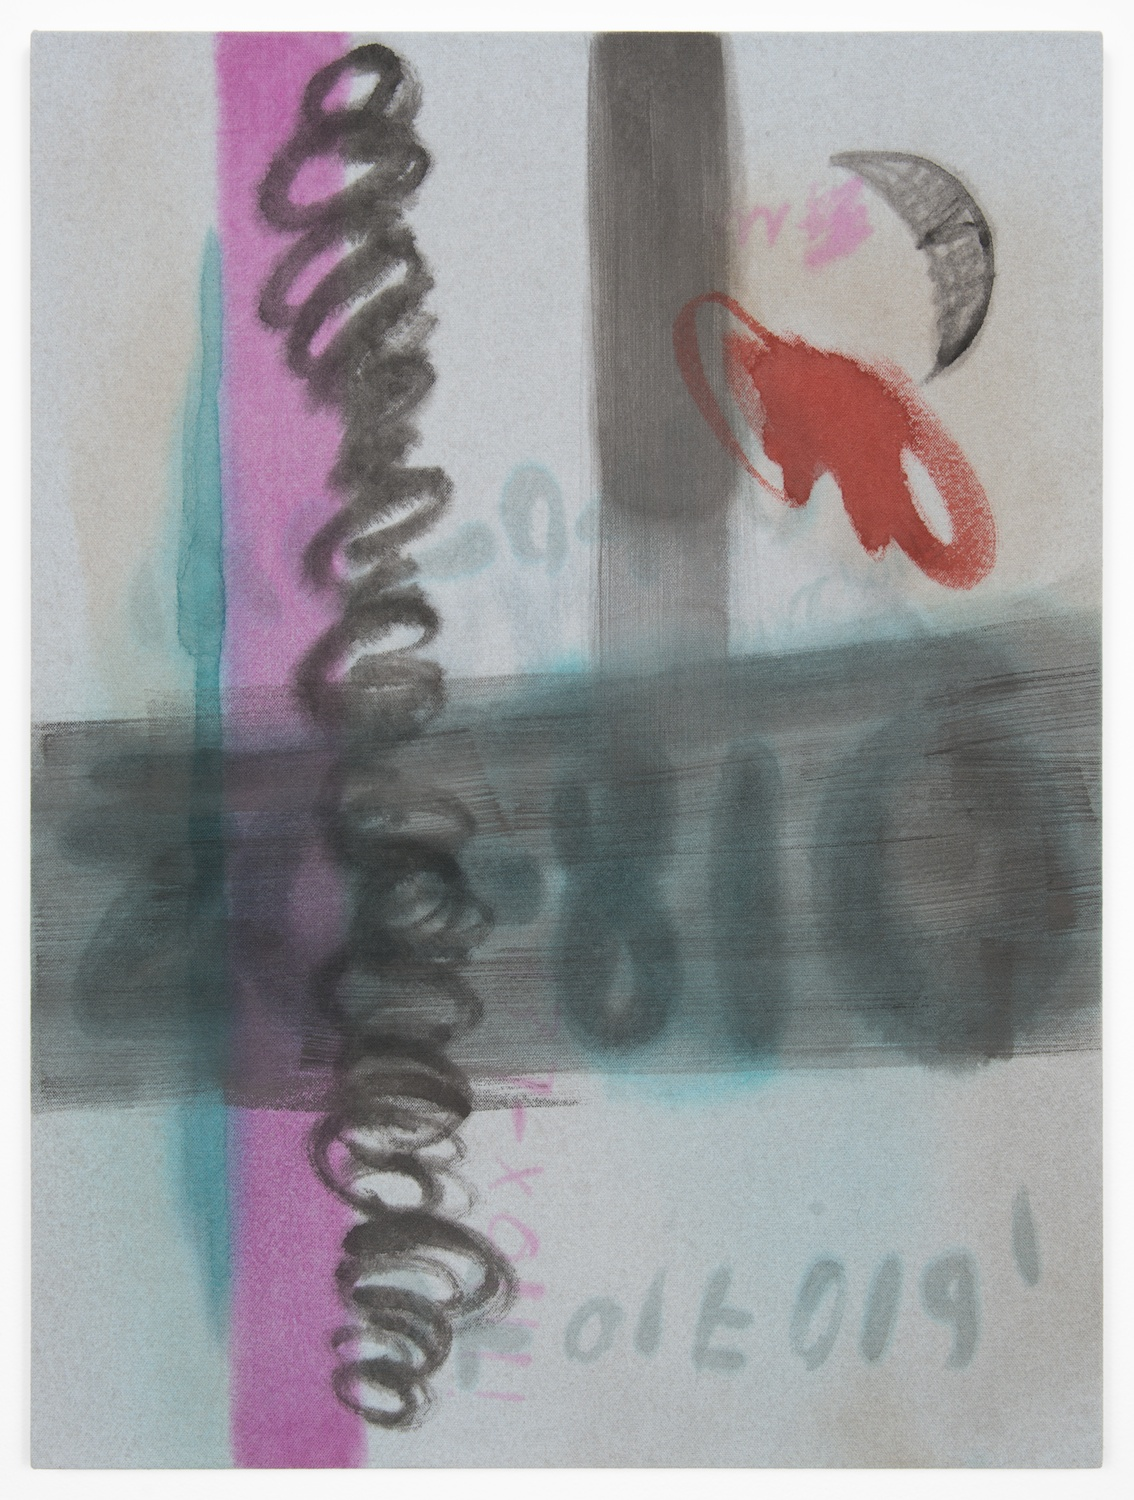 Amanda Ross-Ho  Untitled Painting (ANARKY)  2013 Acrylic on dyed canvas 24h x 18w in ARH042